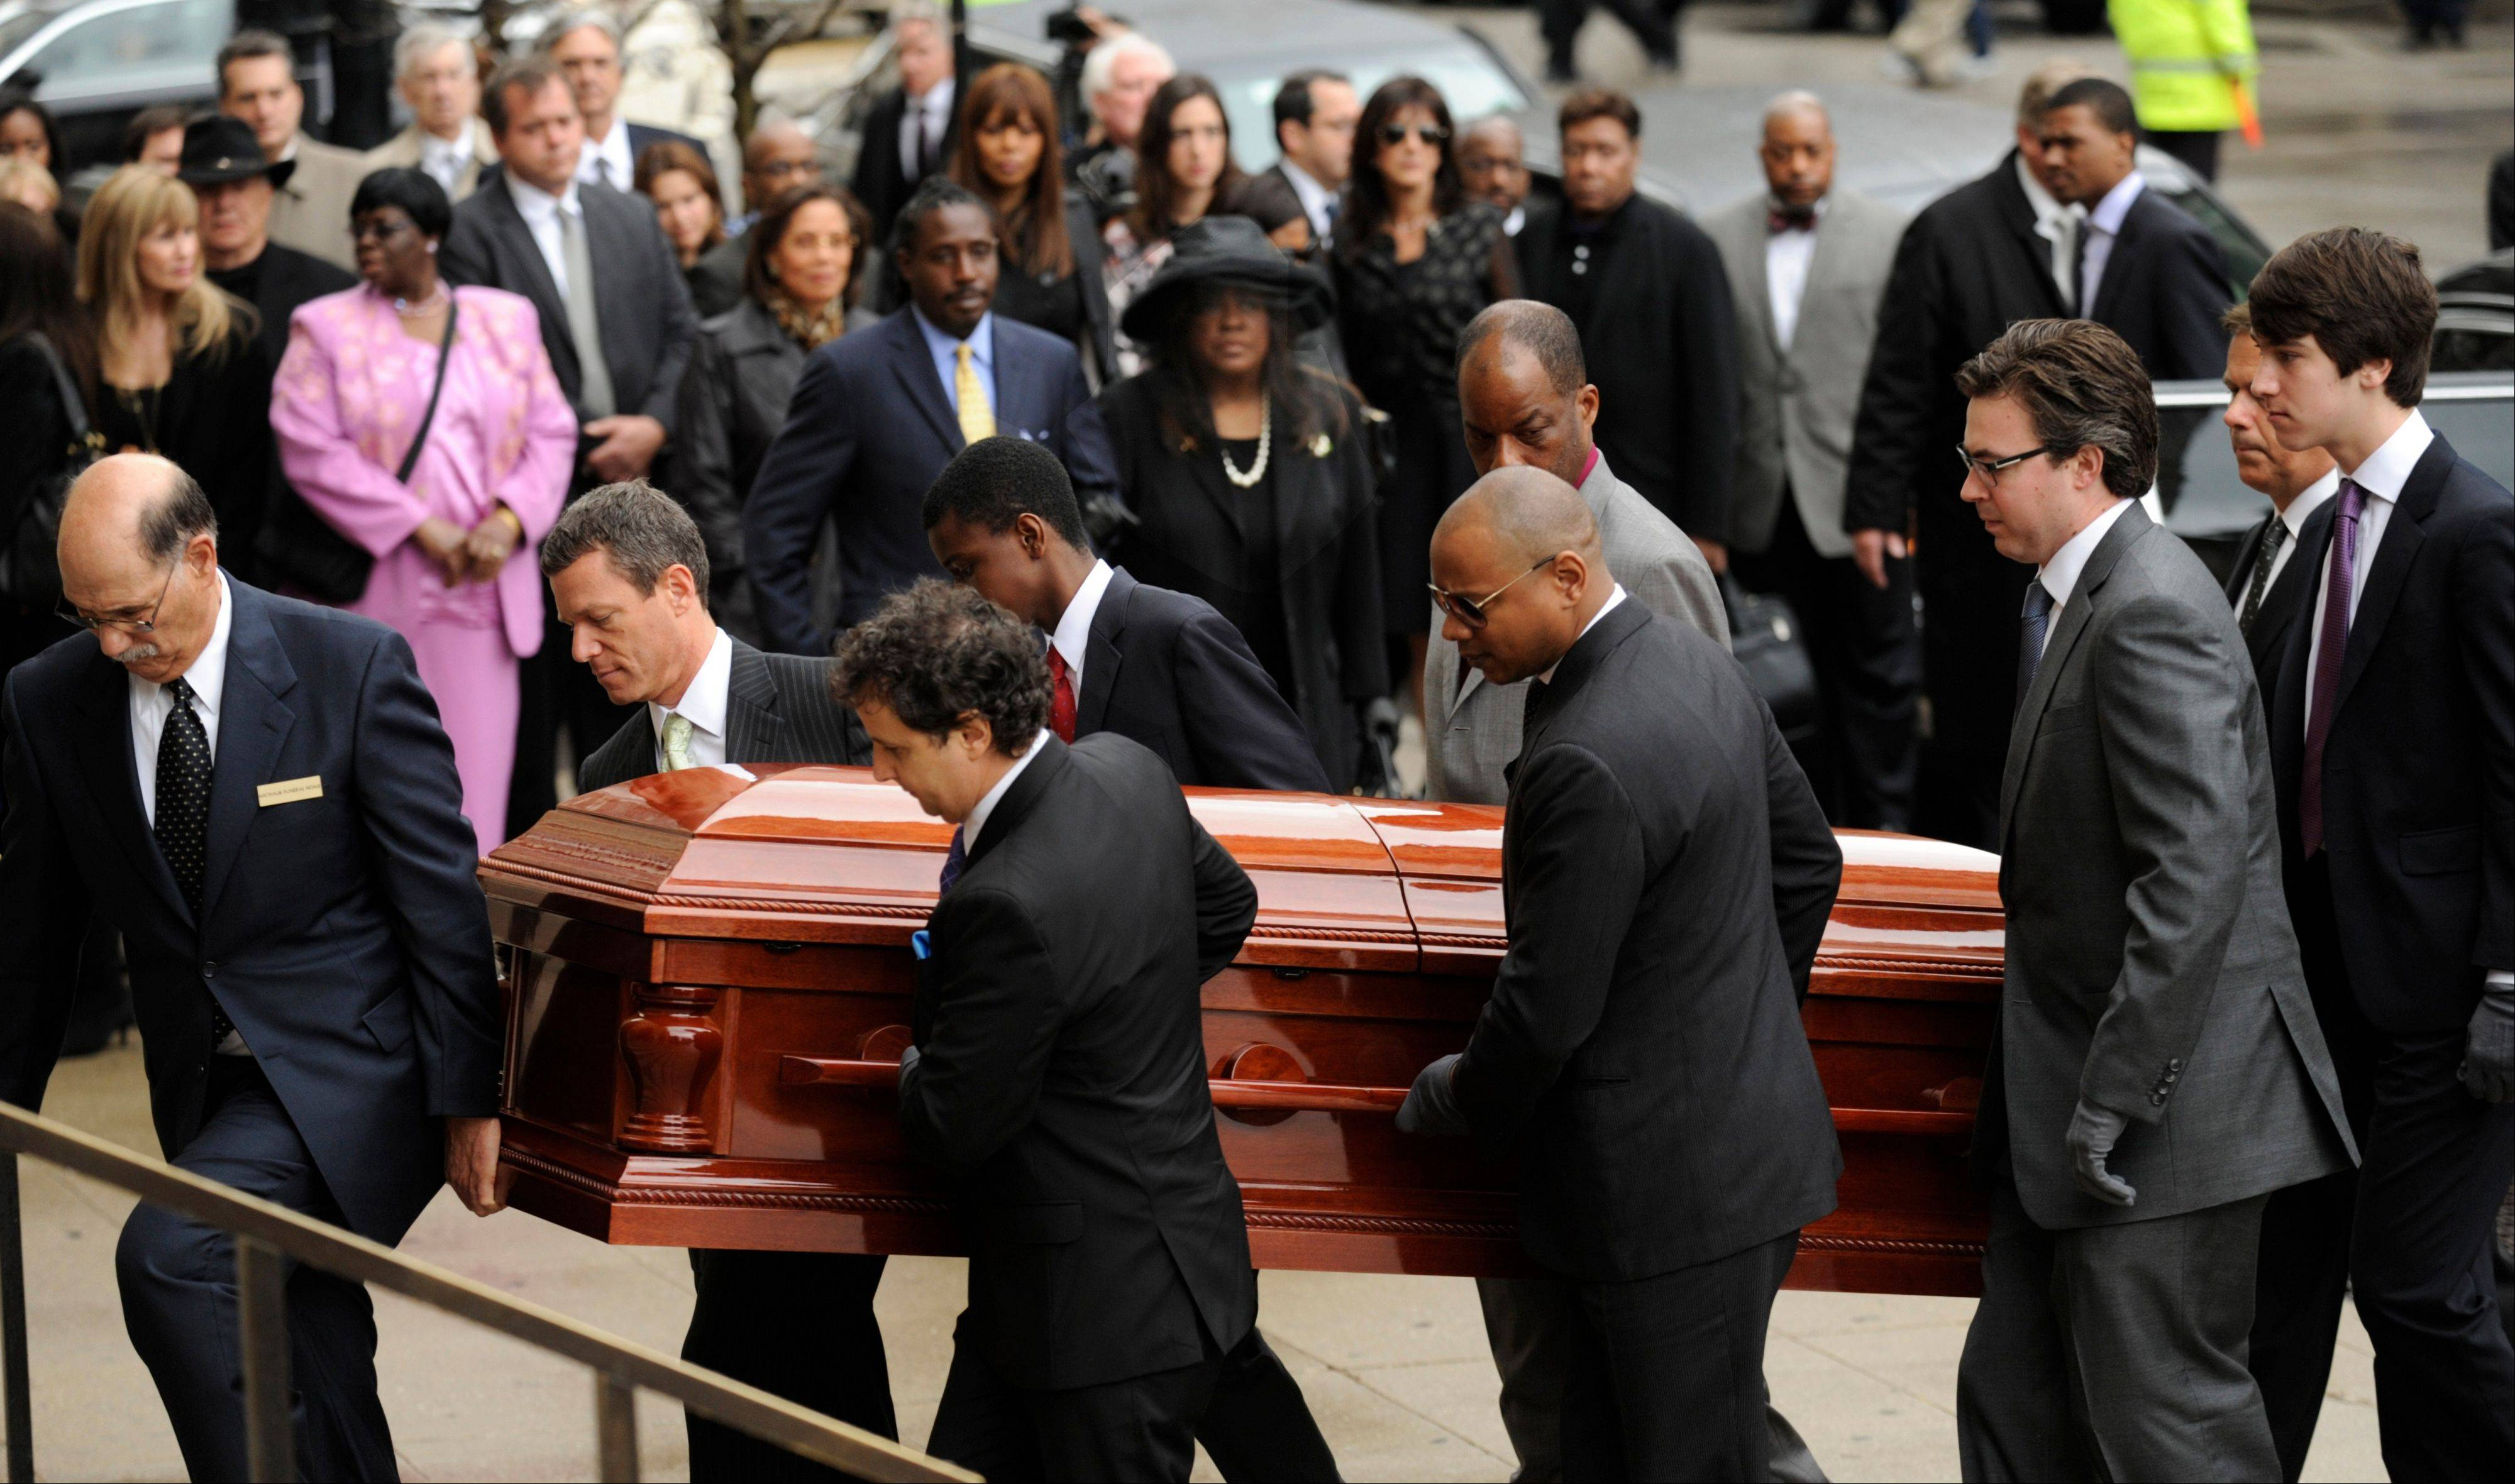 Pallbearers carry the casket of film critic Roger Ebert before his funeral at Holy Name Cathedral in Chicago, Monday.